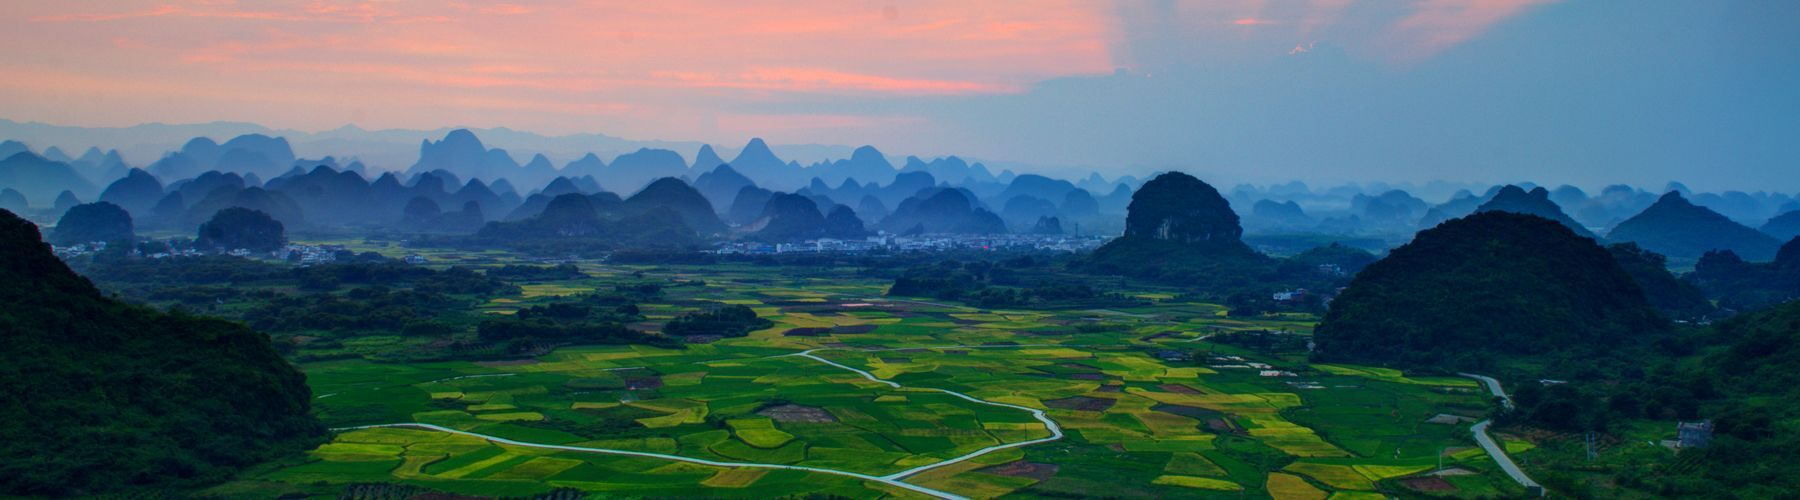 Guilin tour in spring